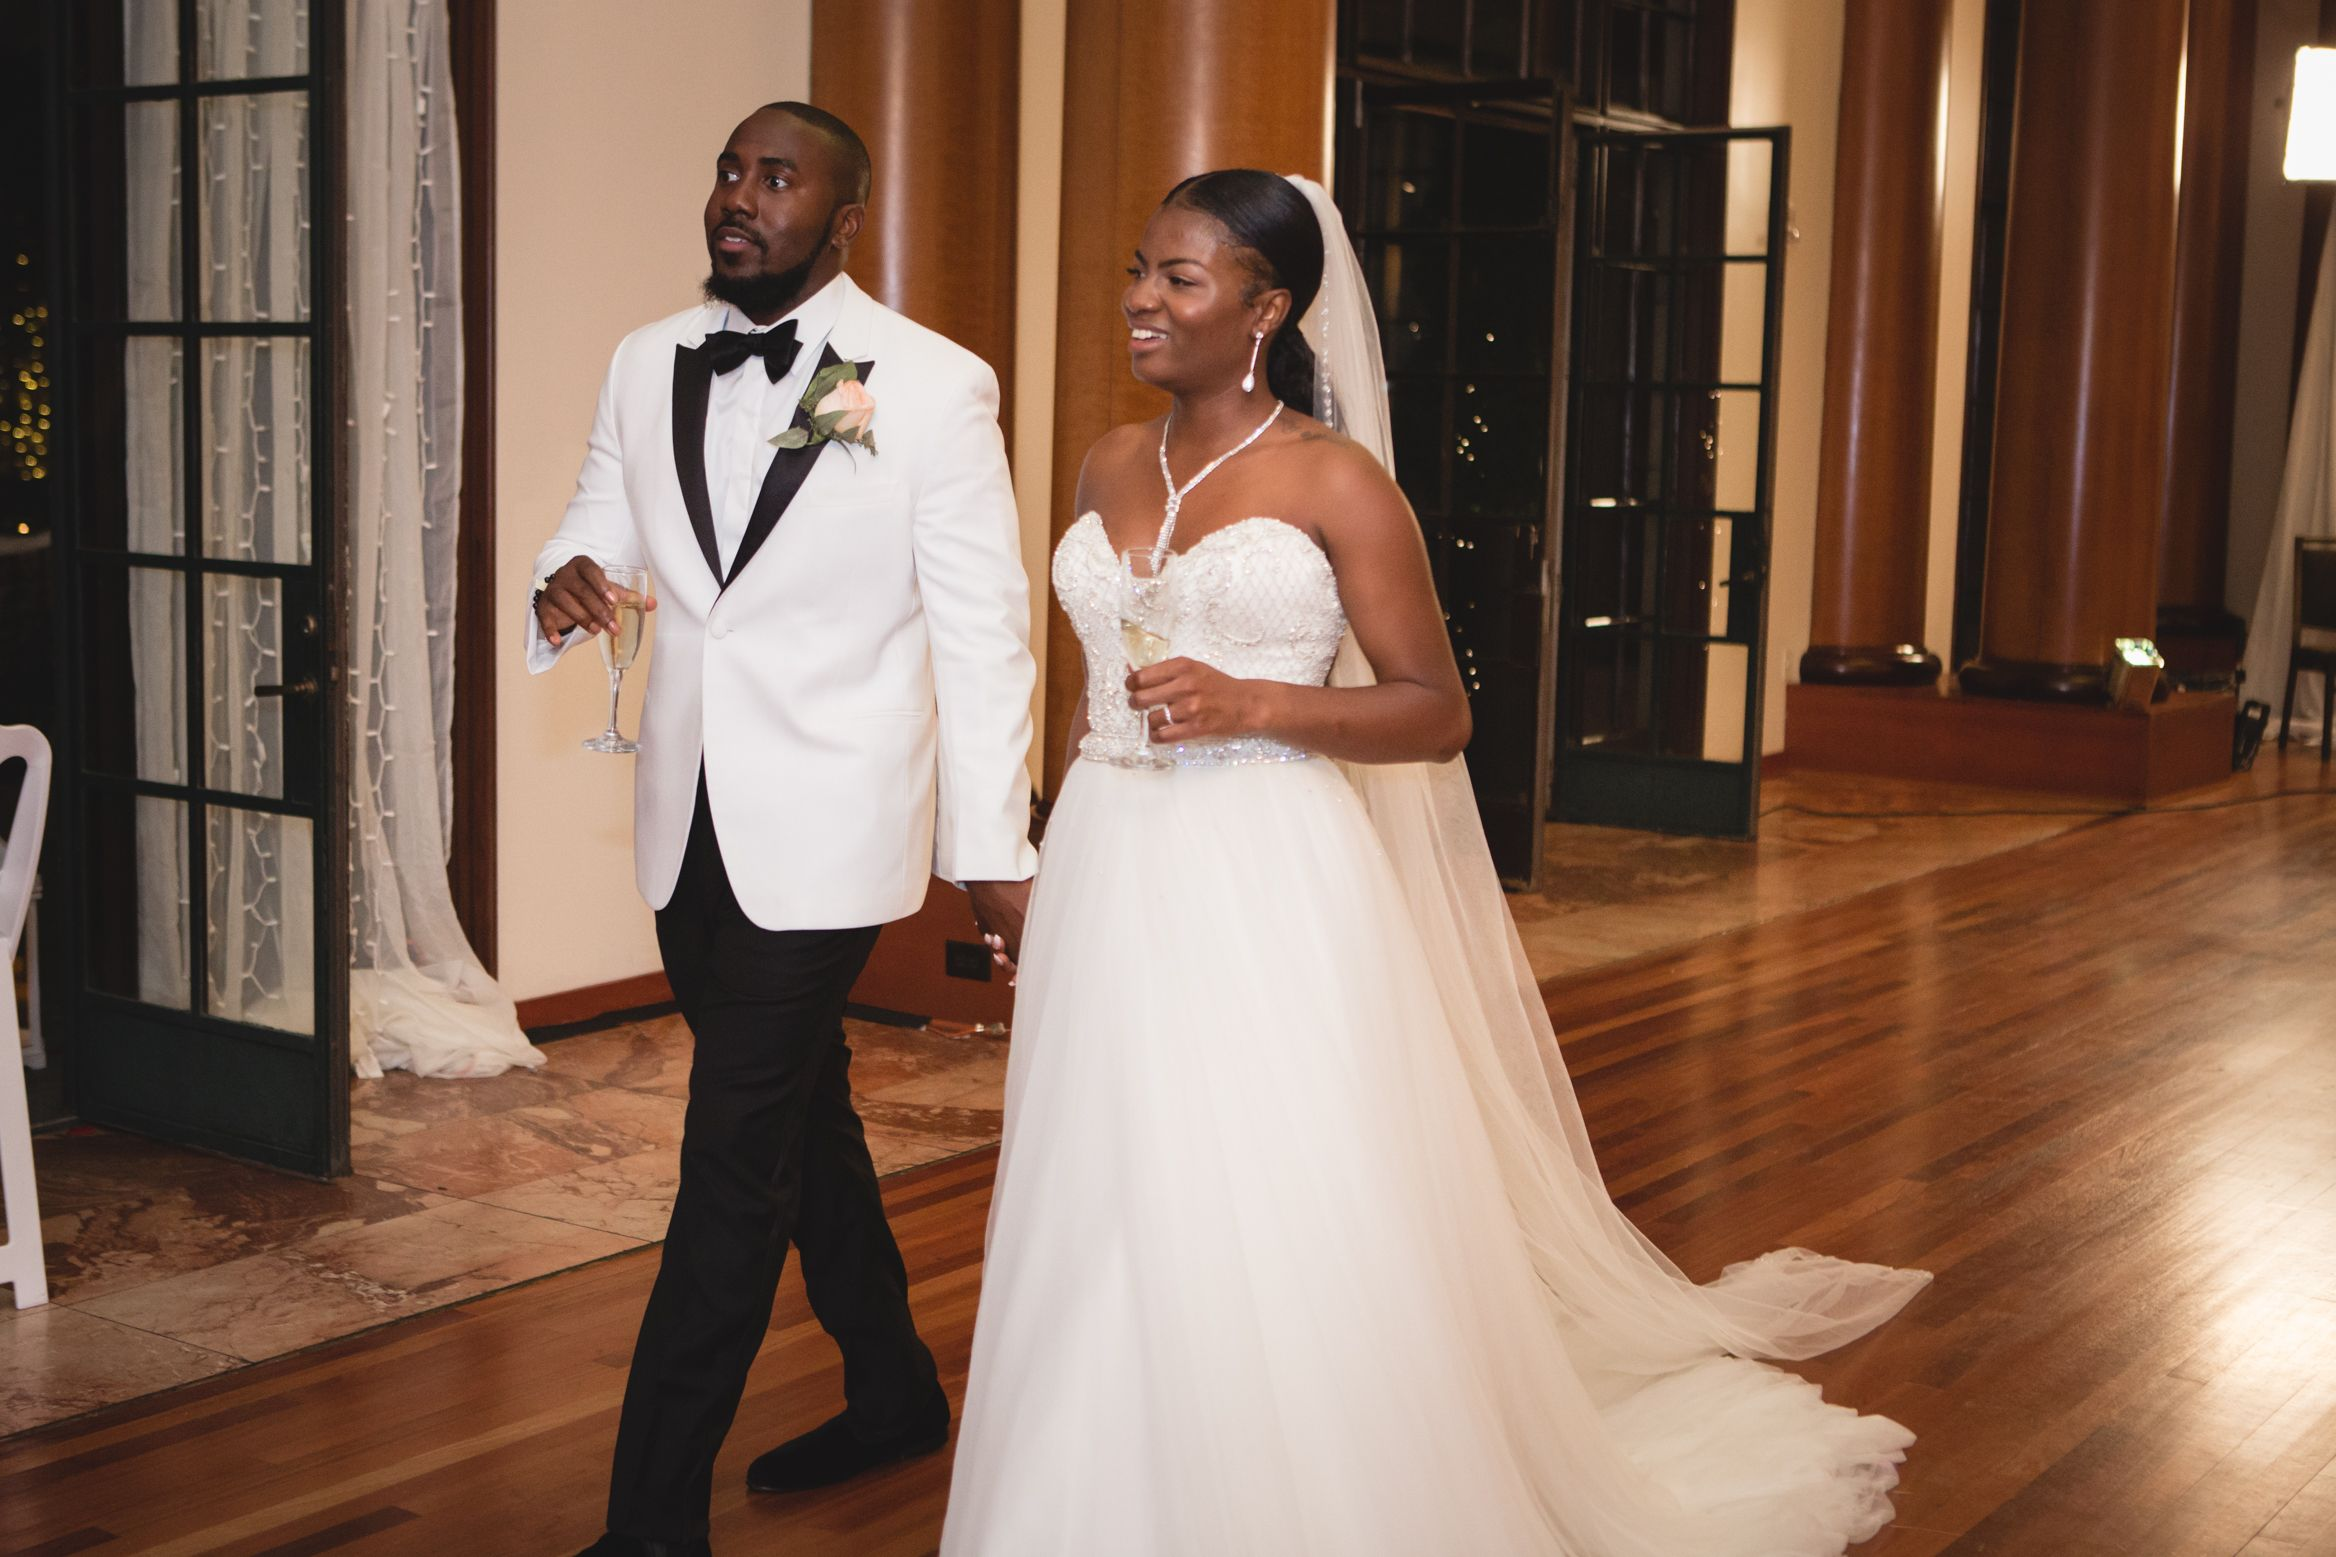 Does The 'Married At First Sight' Cast Get Paid? An Insider Source Reveals How Much They Make